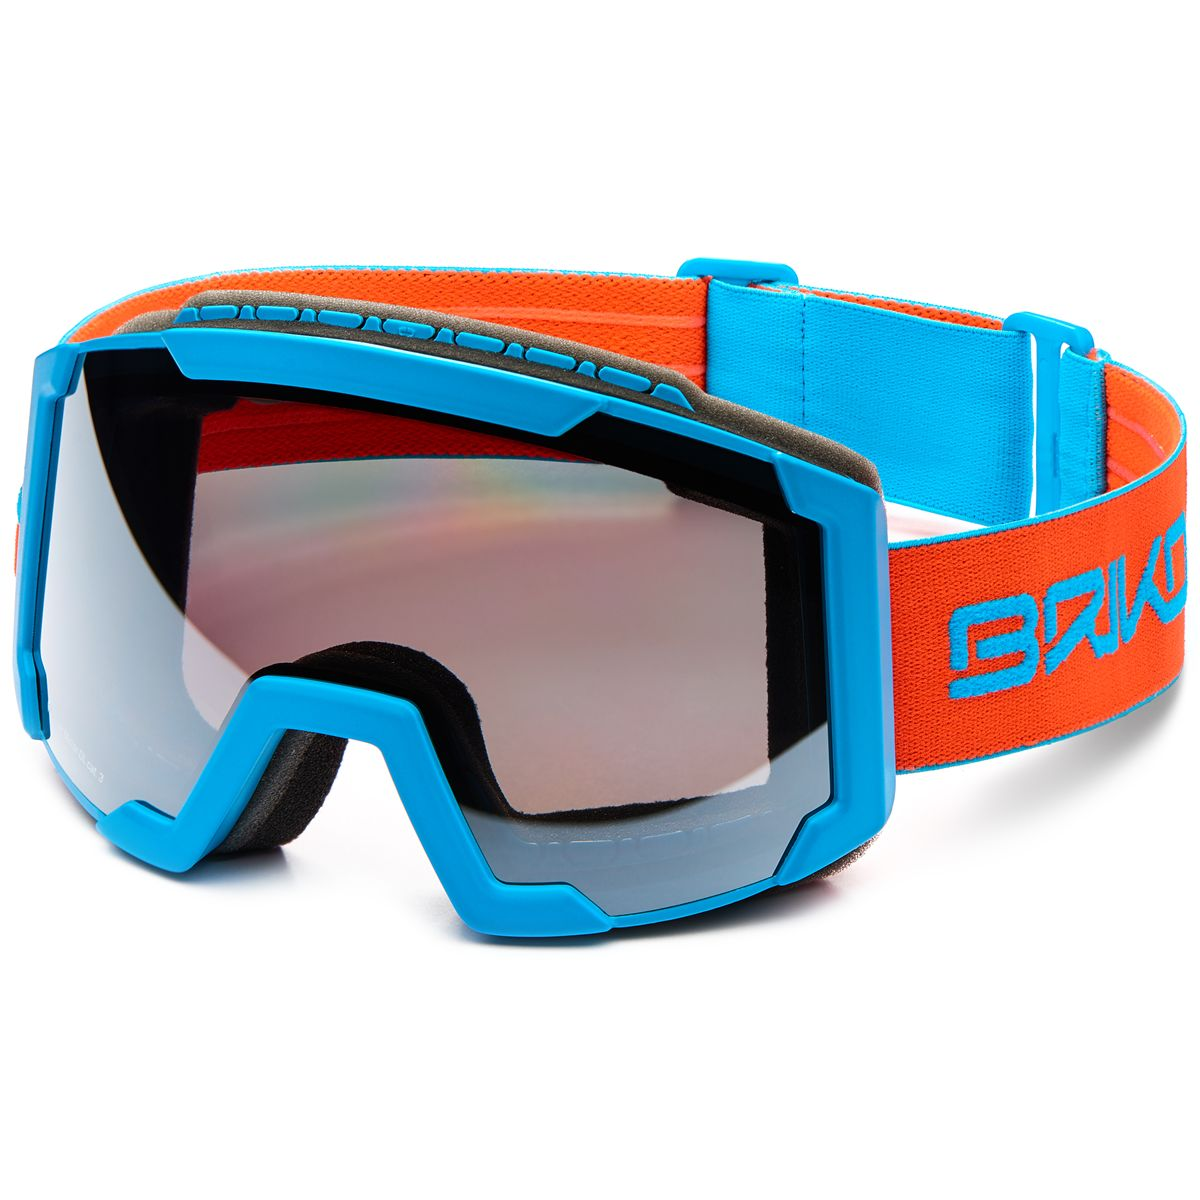 75ee763b2 Briko Lava Light Blue/Fluo Orange - Wellsnowsports Ltd